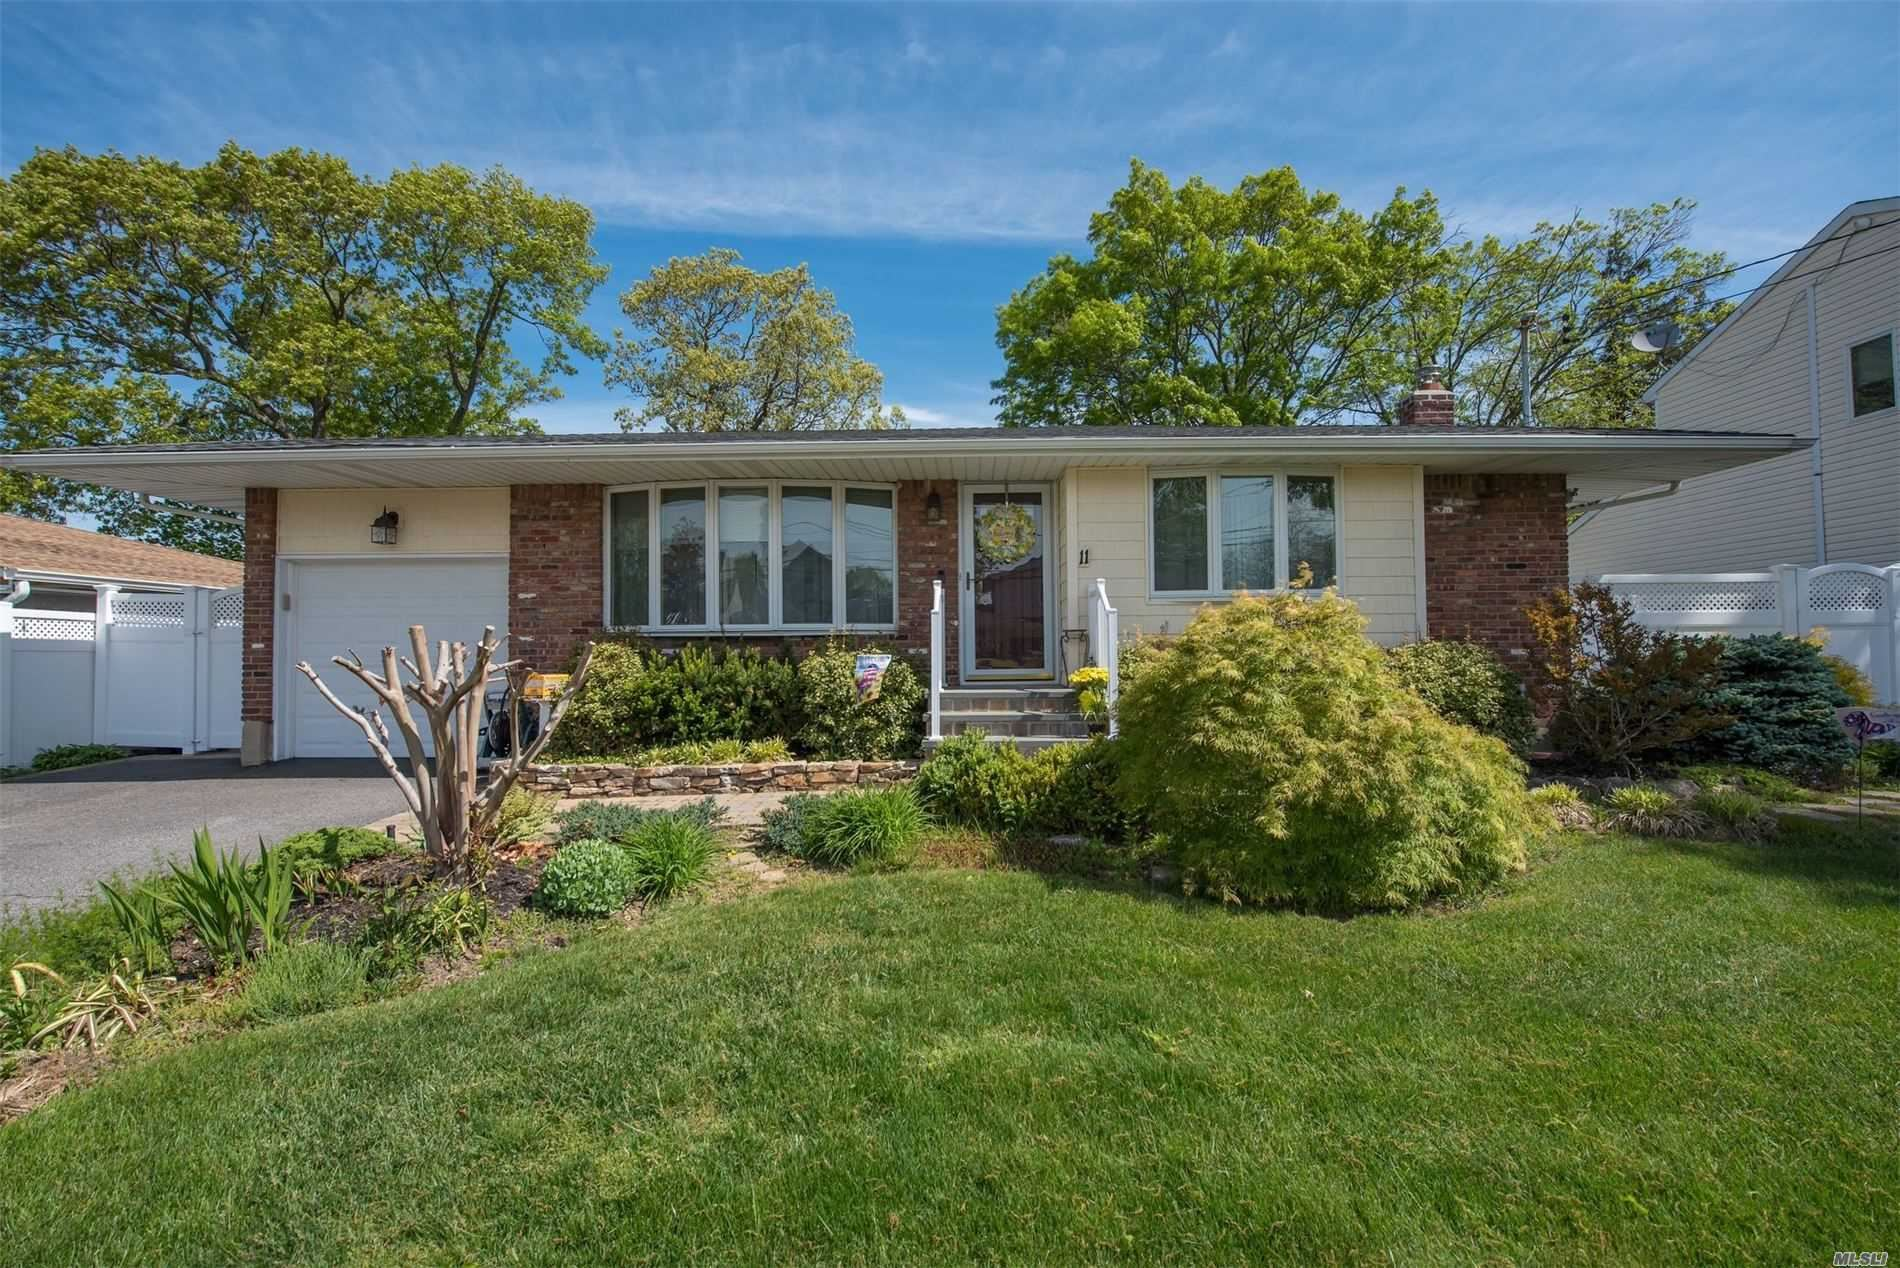 11 8th Ave, Farmingdale, NY 11735 - MLS#: 3217209